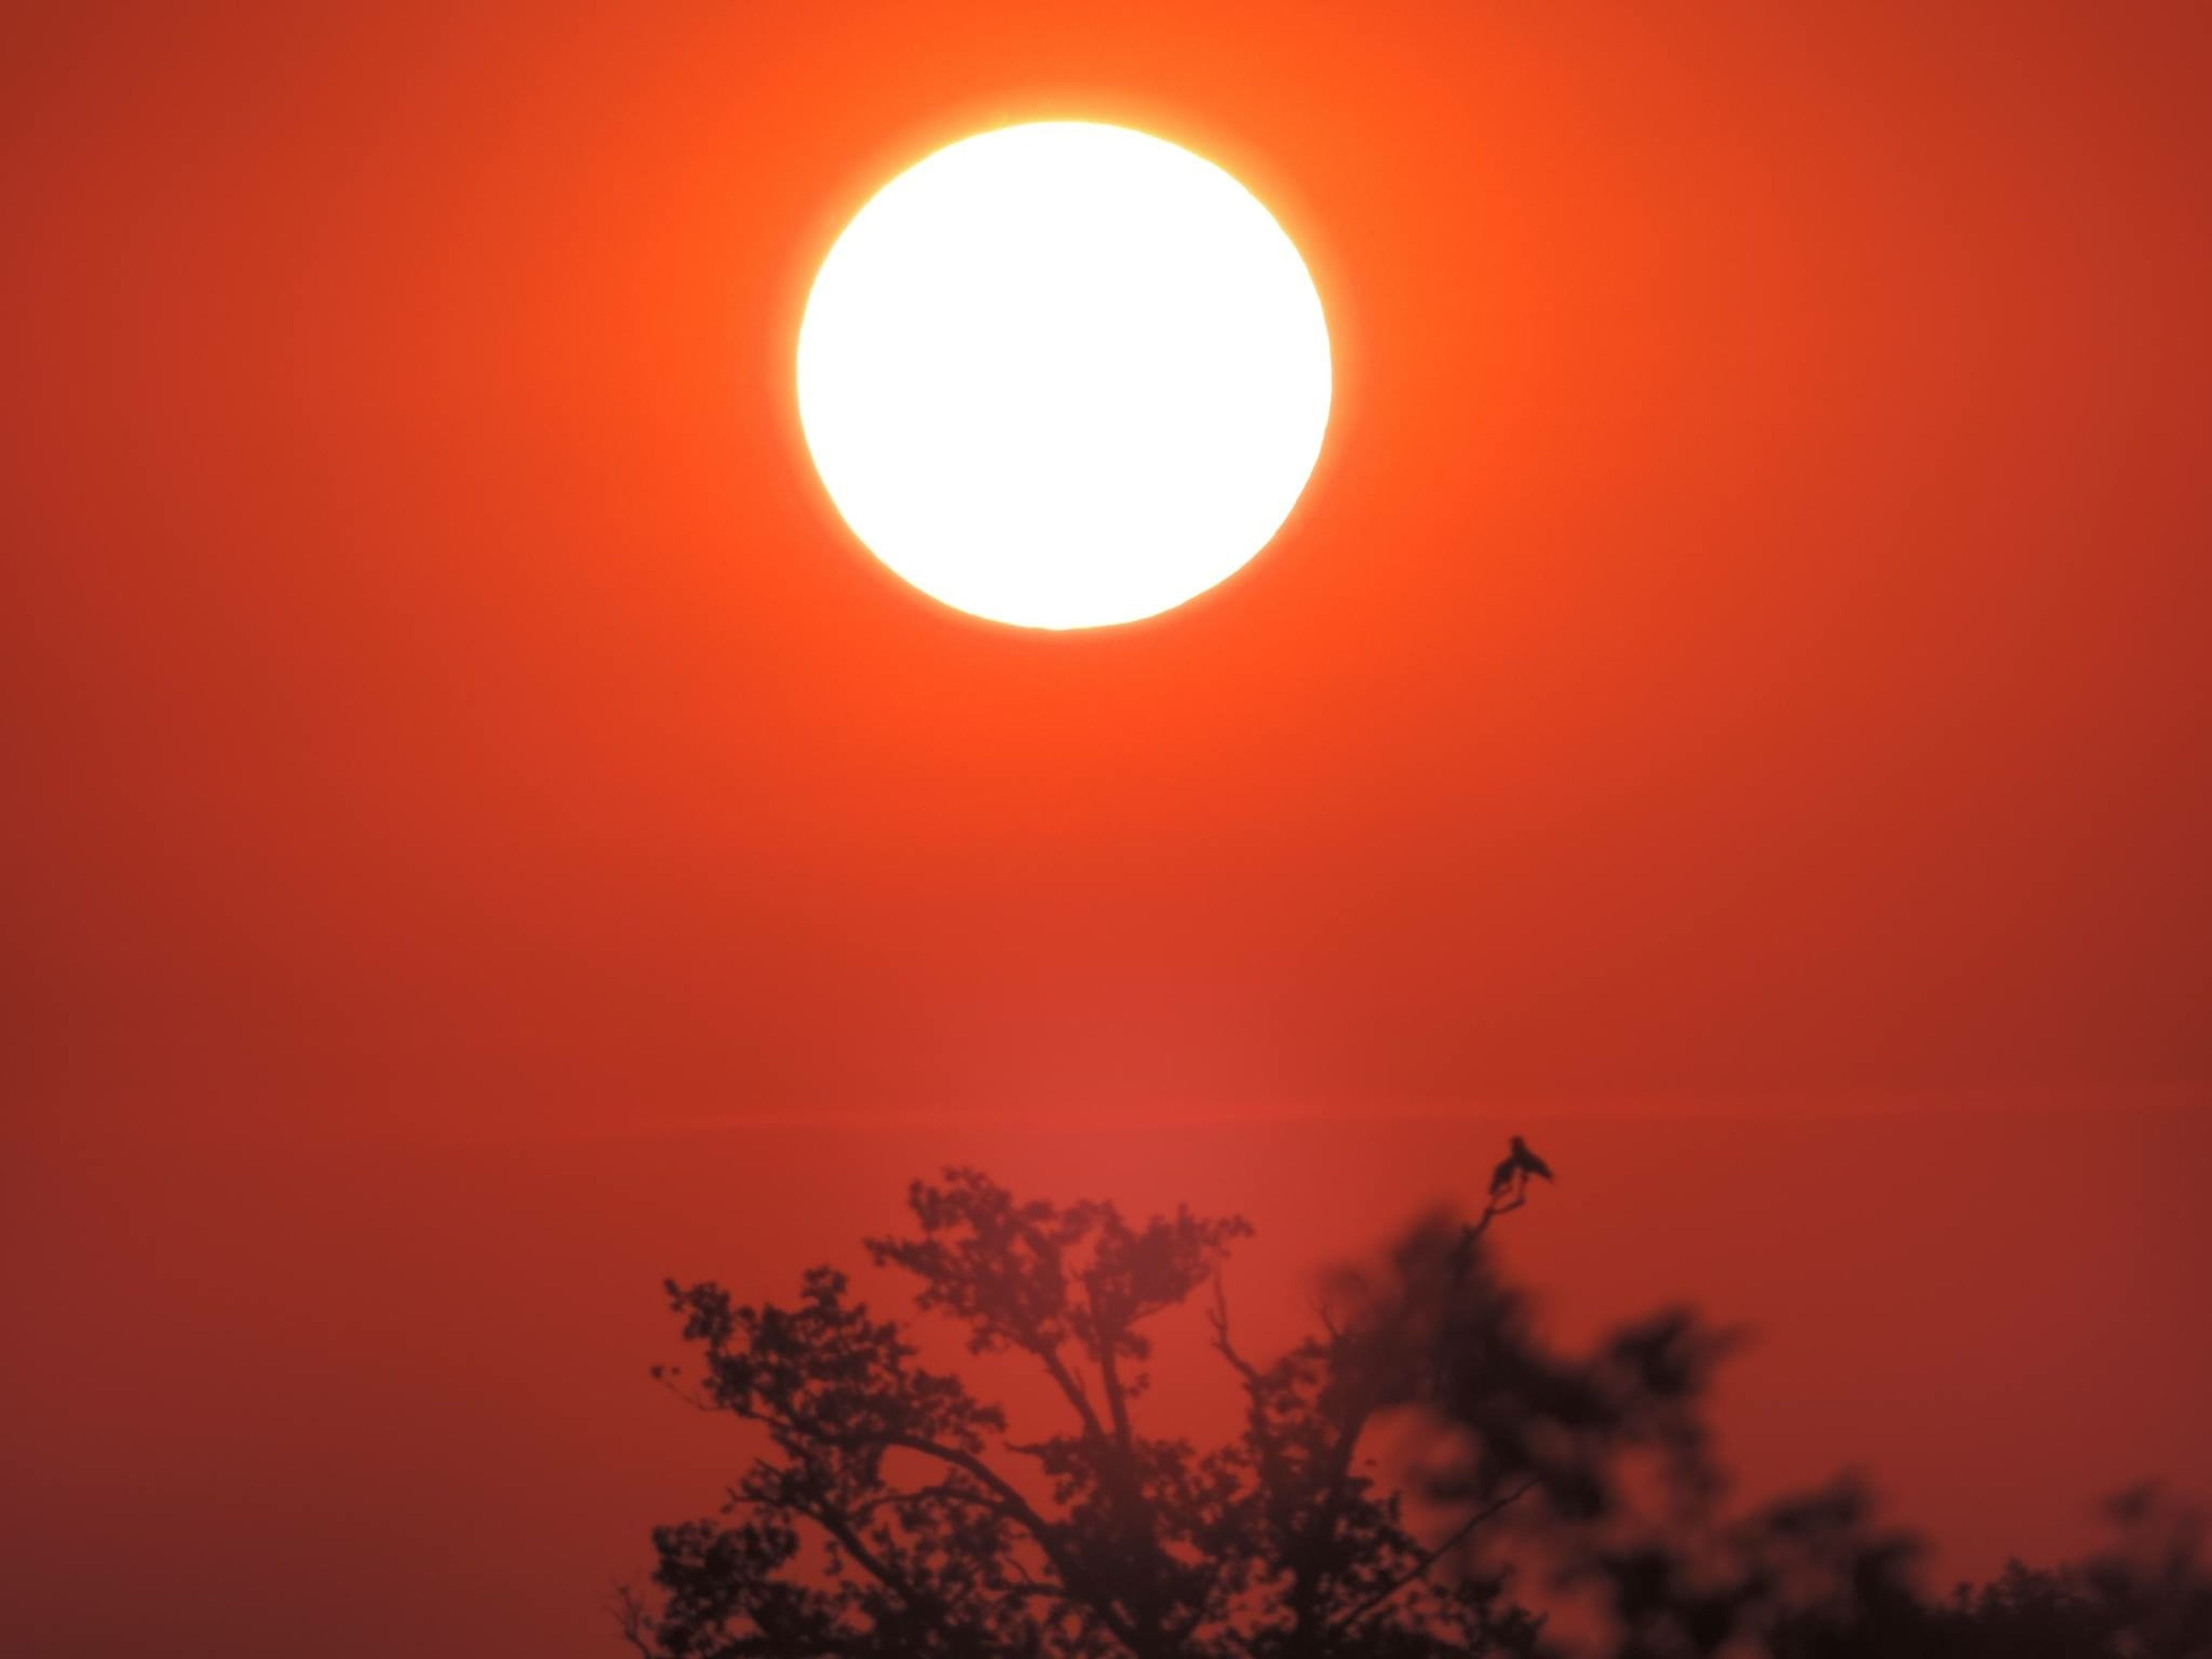 sunset, sun, orange color, low angle view, sky, beauty in nature, silhouette, scenics, clear sky, red, nature, tranquility, copy space, circle, tranquil scene, idyllic, no people, outdoors, flying, sunlight